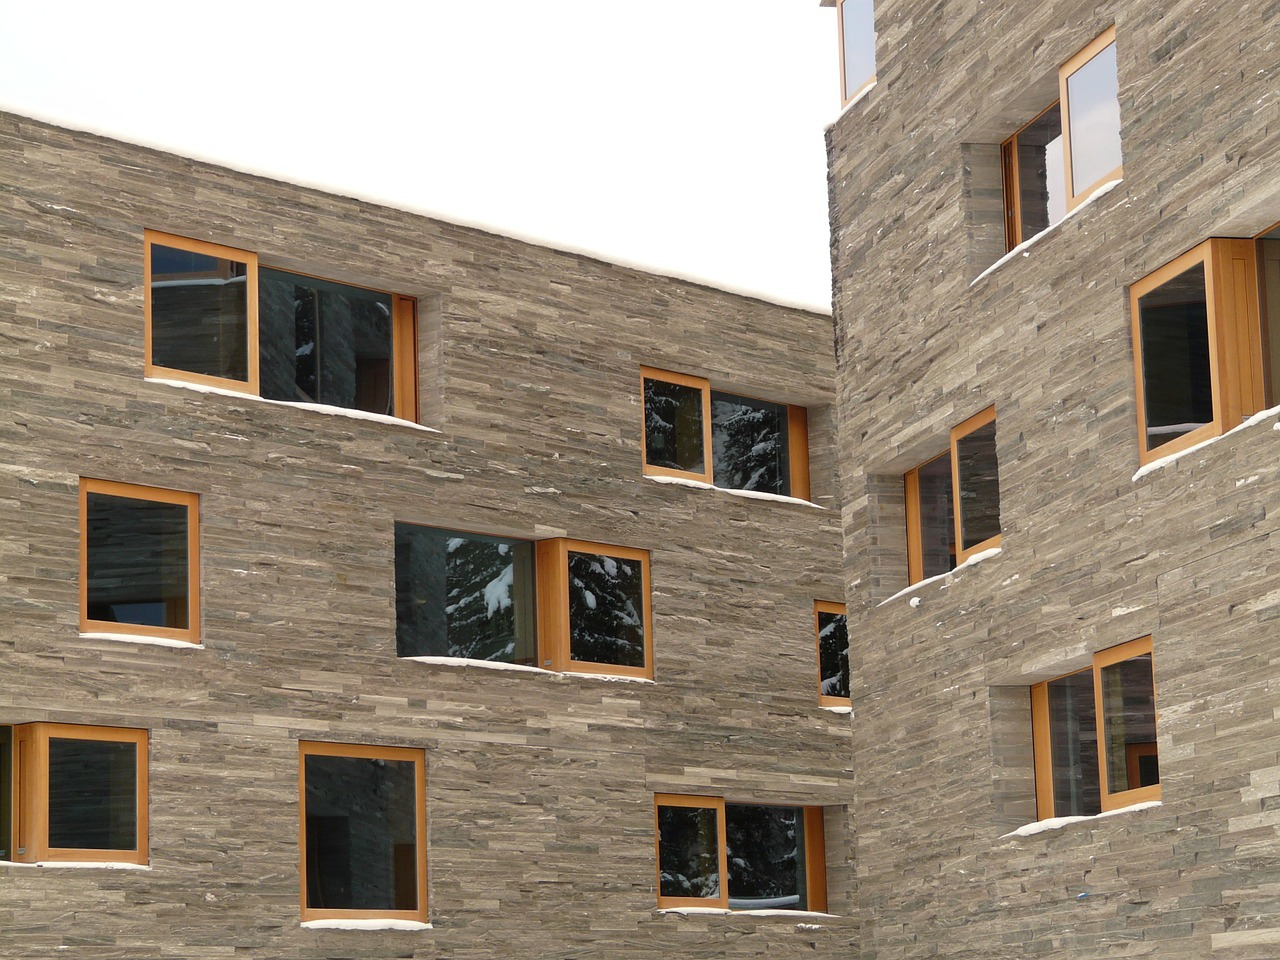 hauswand window facade free picture